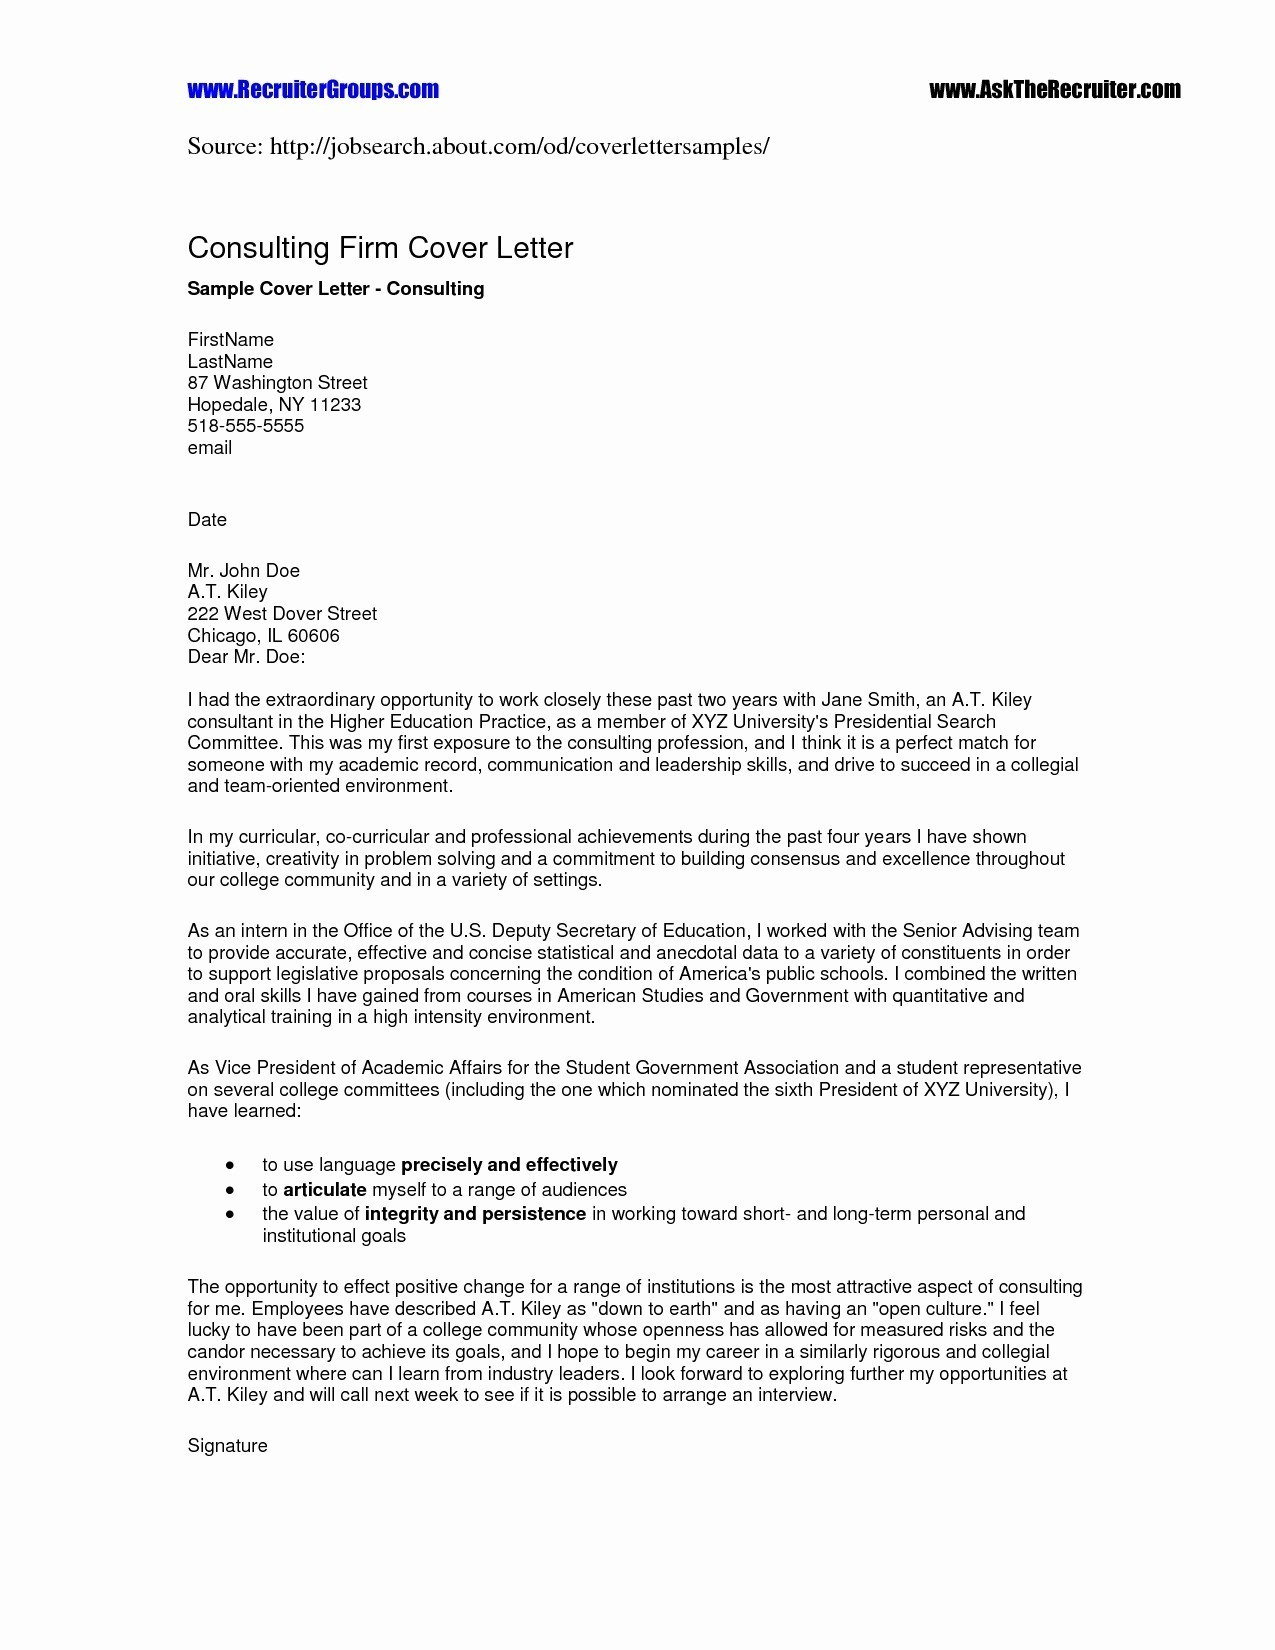 Request for Donations Letter Template Free - Fresh asking Job Letter